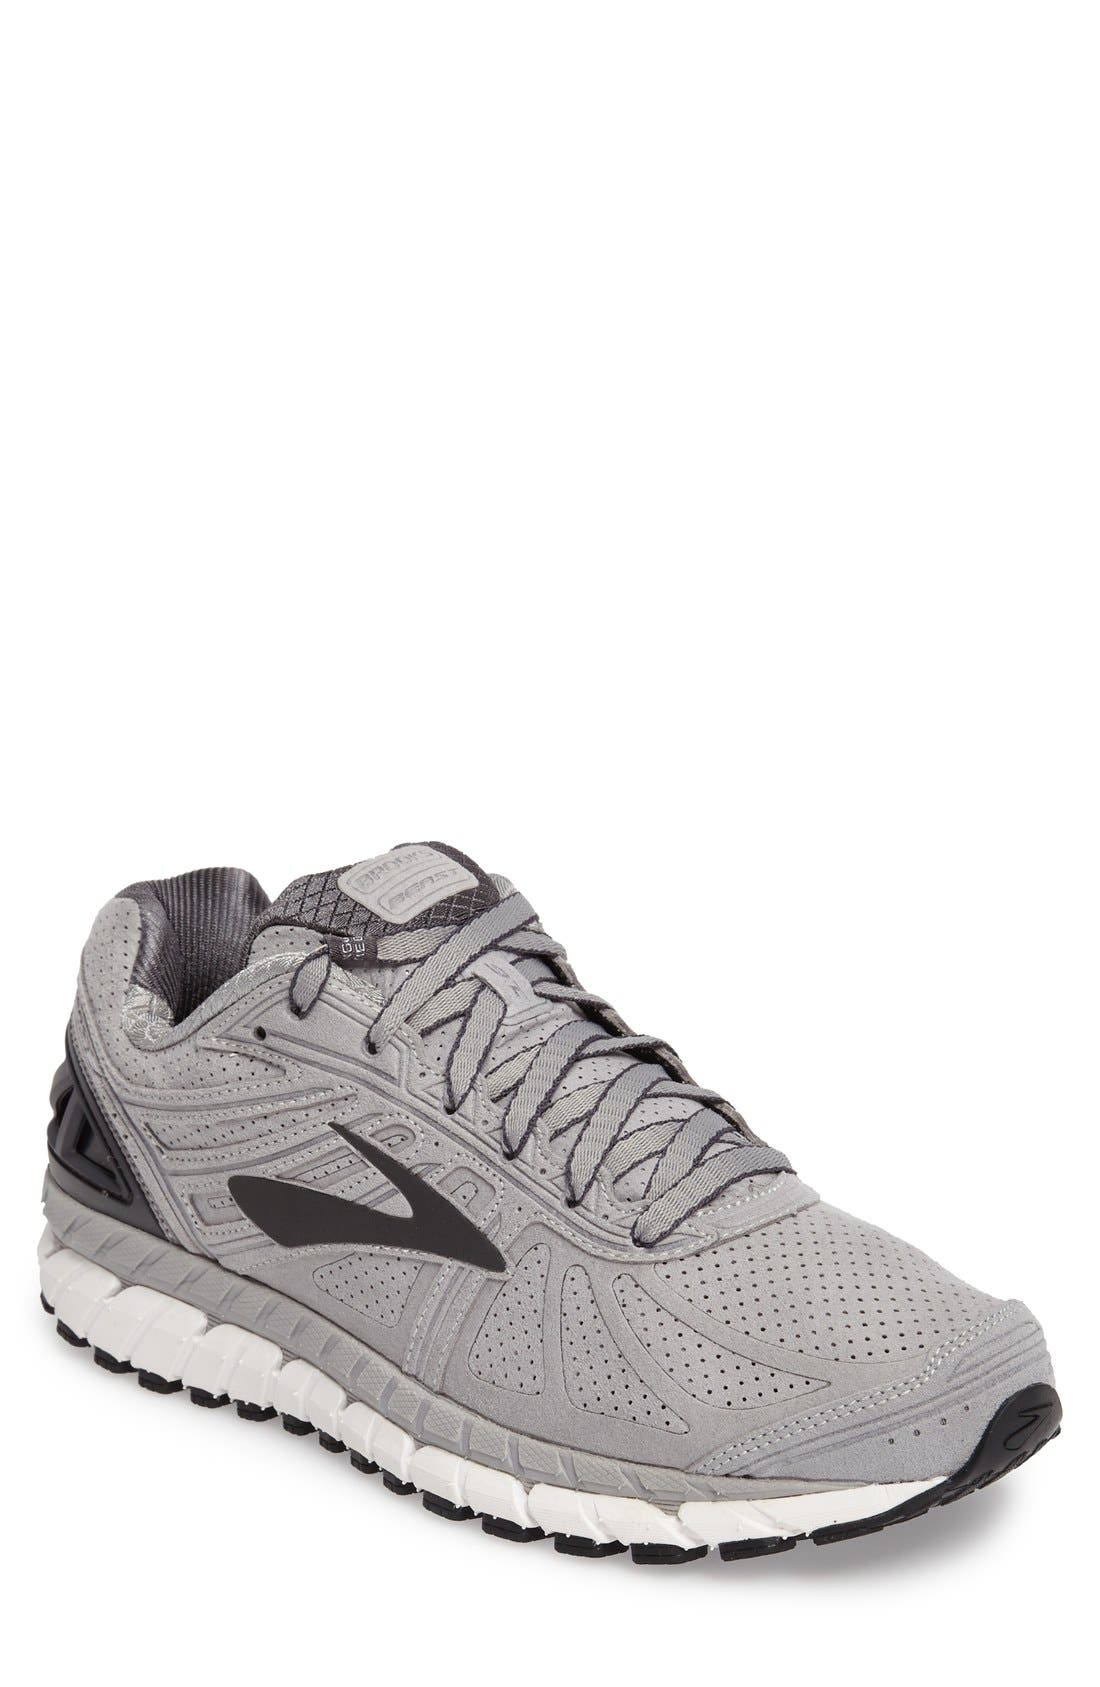 Beast 16 LE Running Shoe,                         Main,                         color,